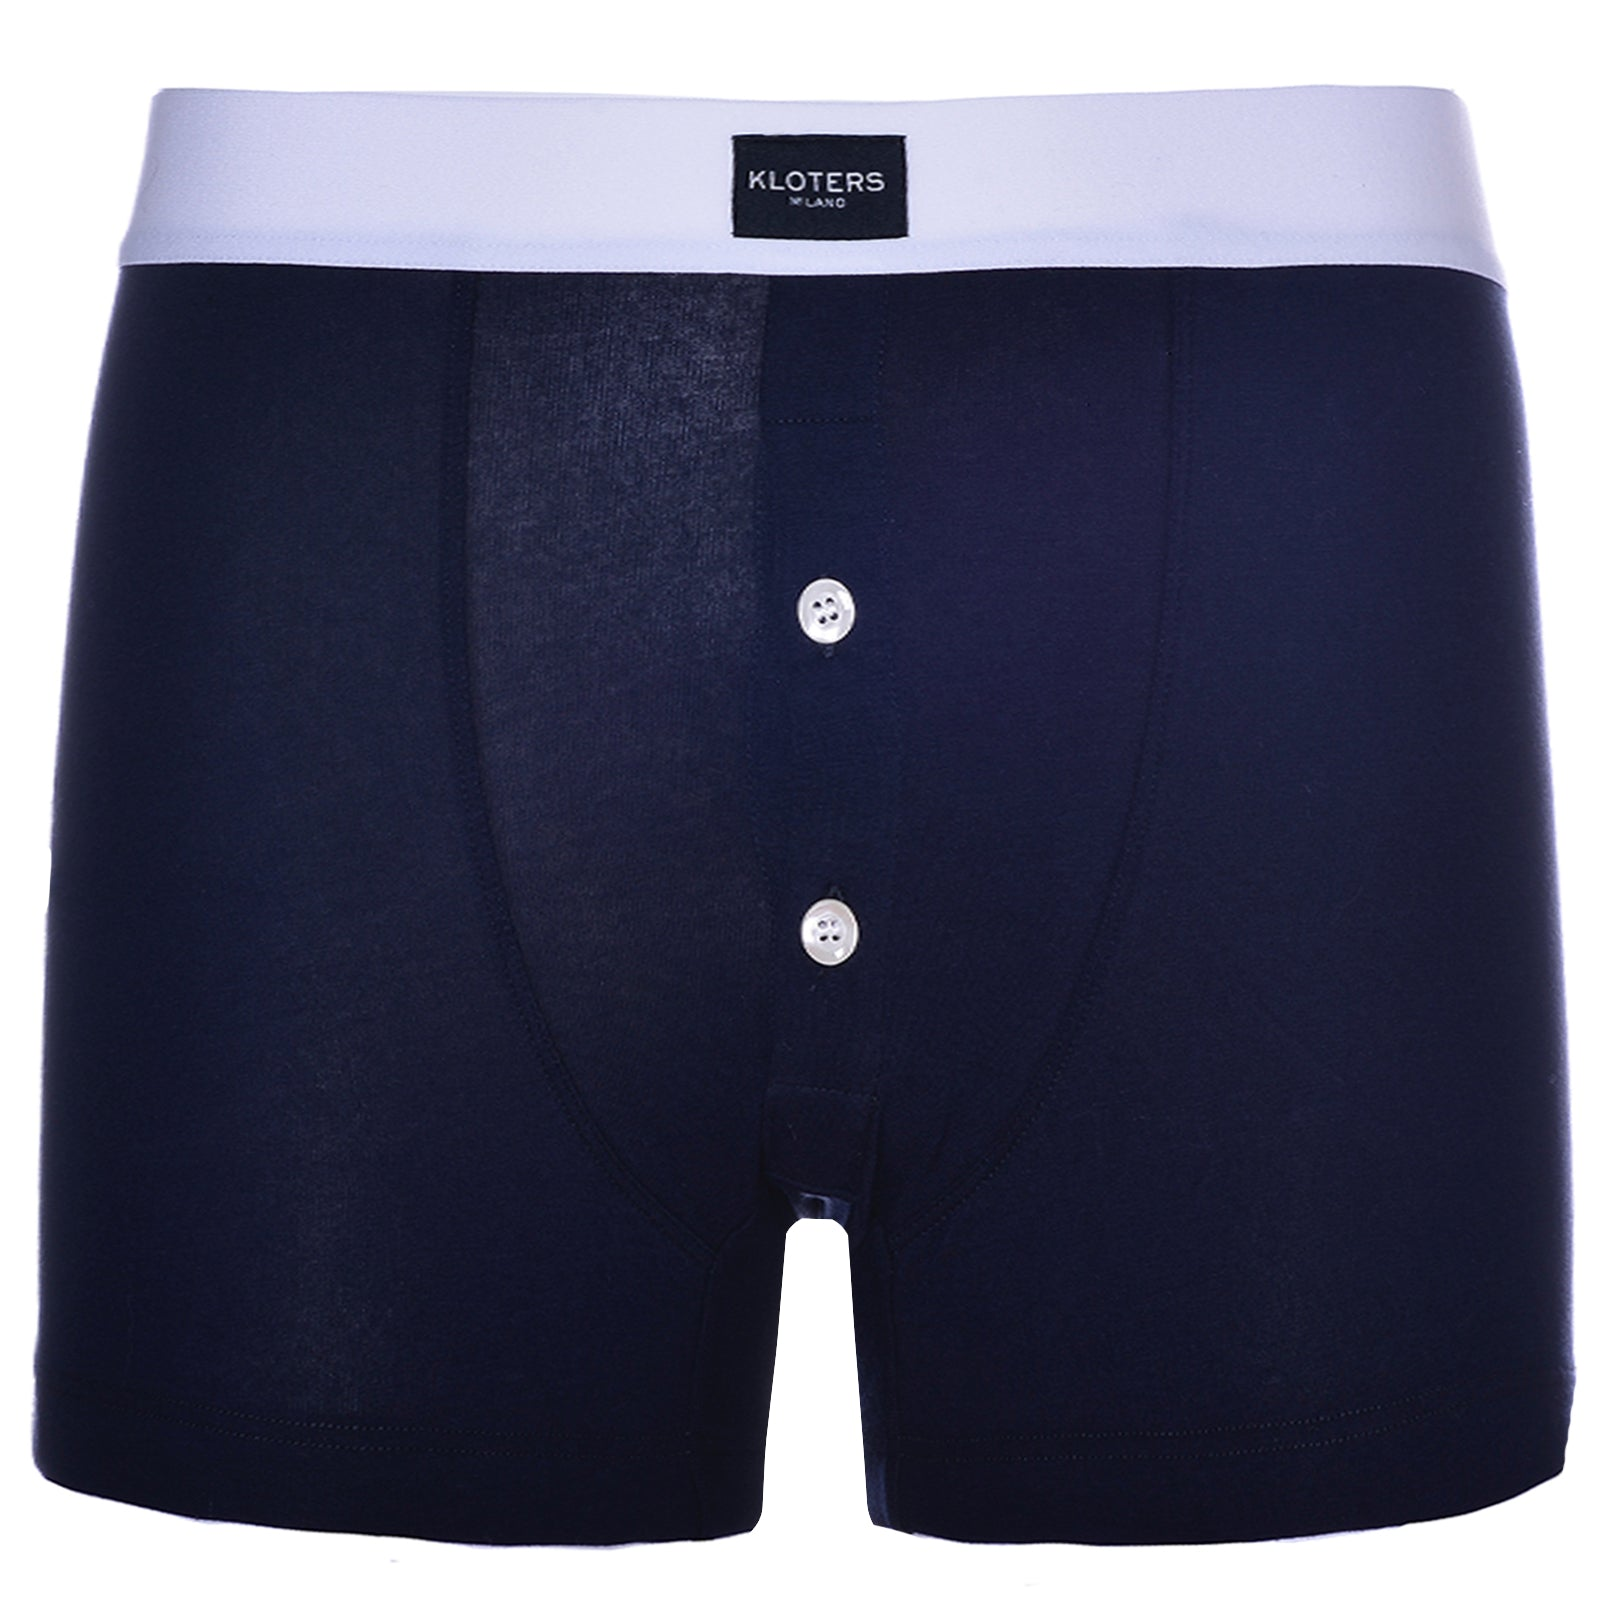 Boxer Briefs - Blue Boxer Briefs With Buttons